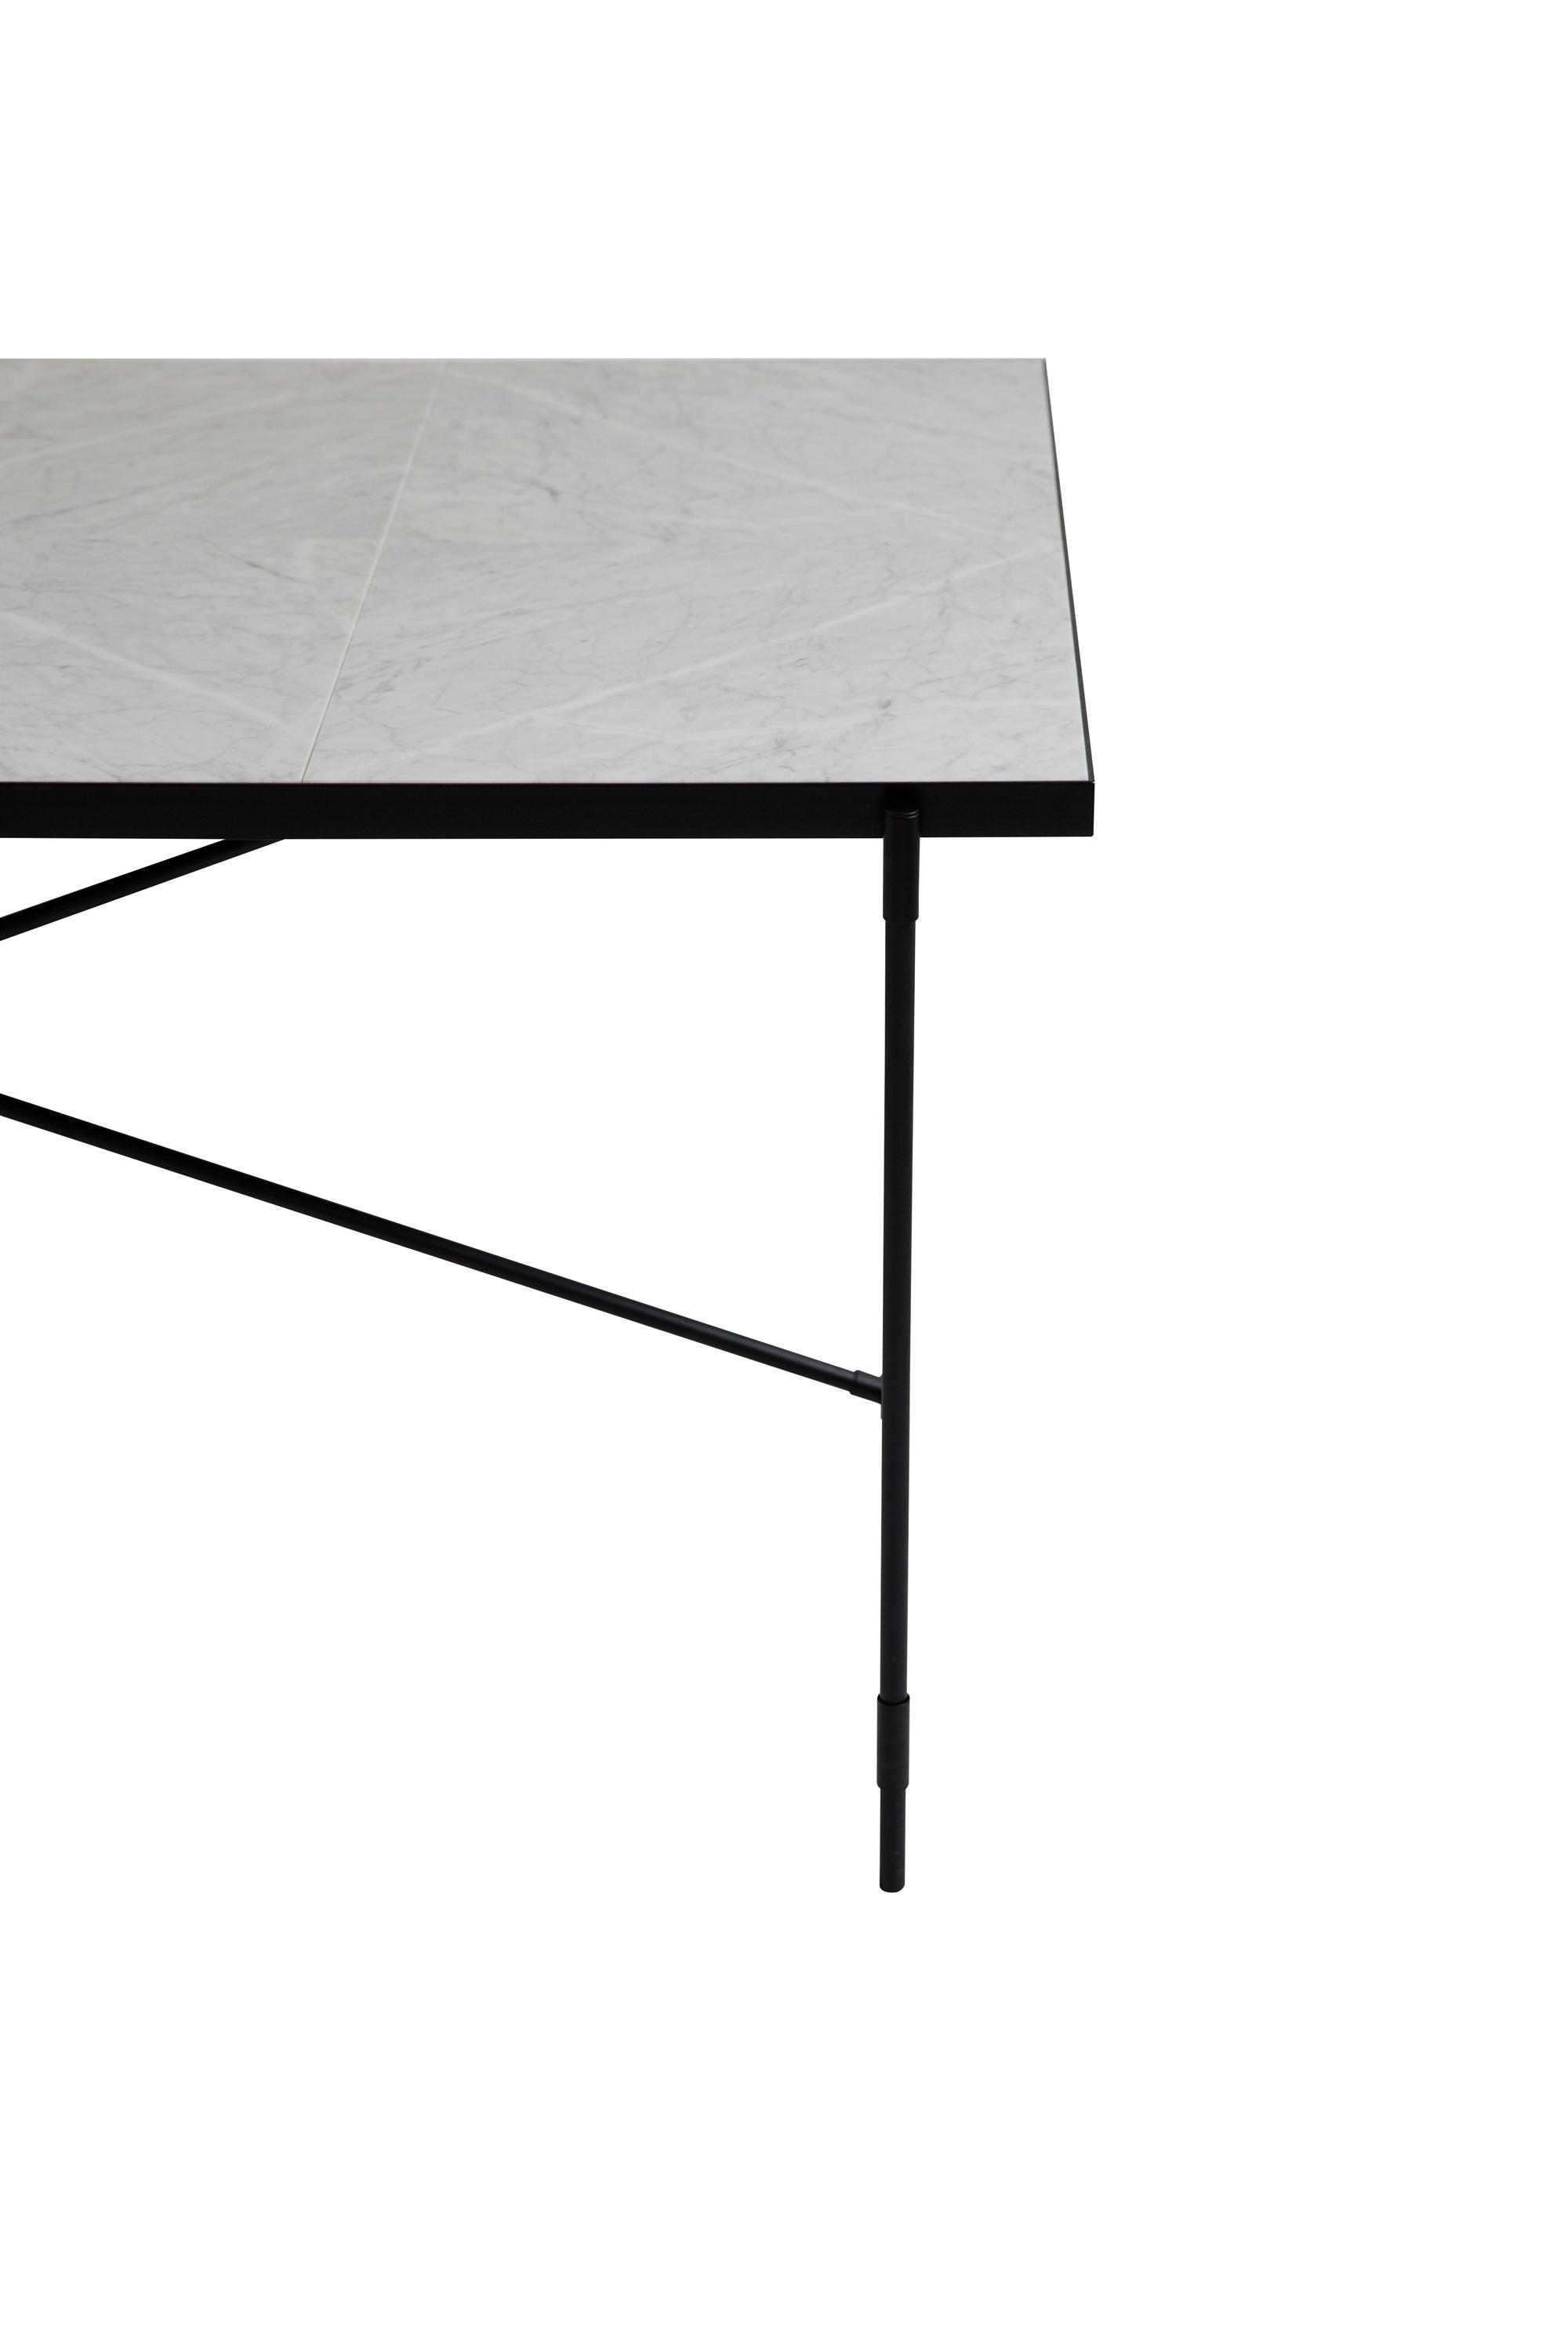 Dining table 185 black on black white marble dining tables by handv rk architonic - White marble dining tables ...